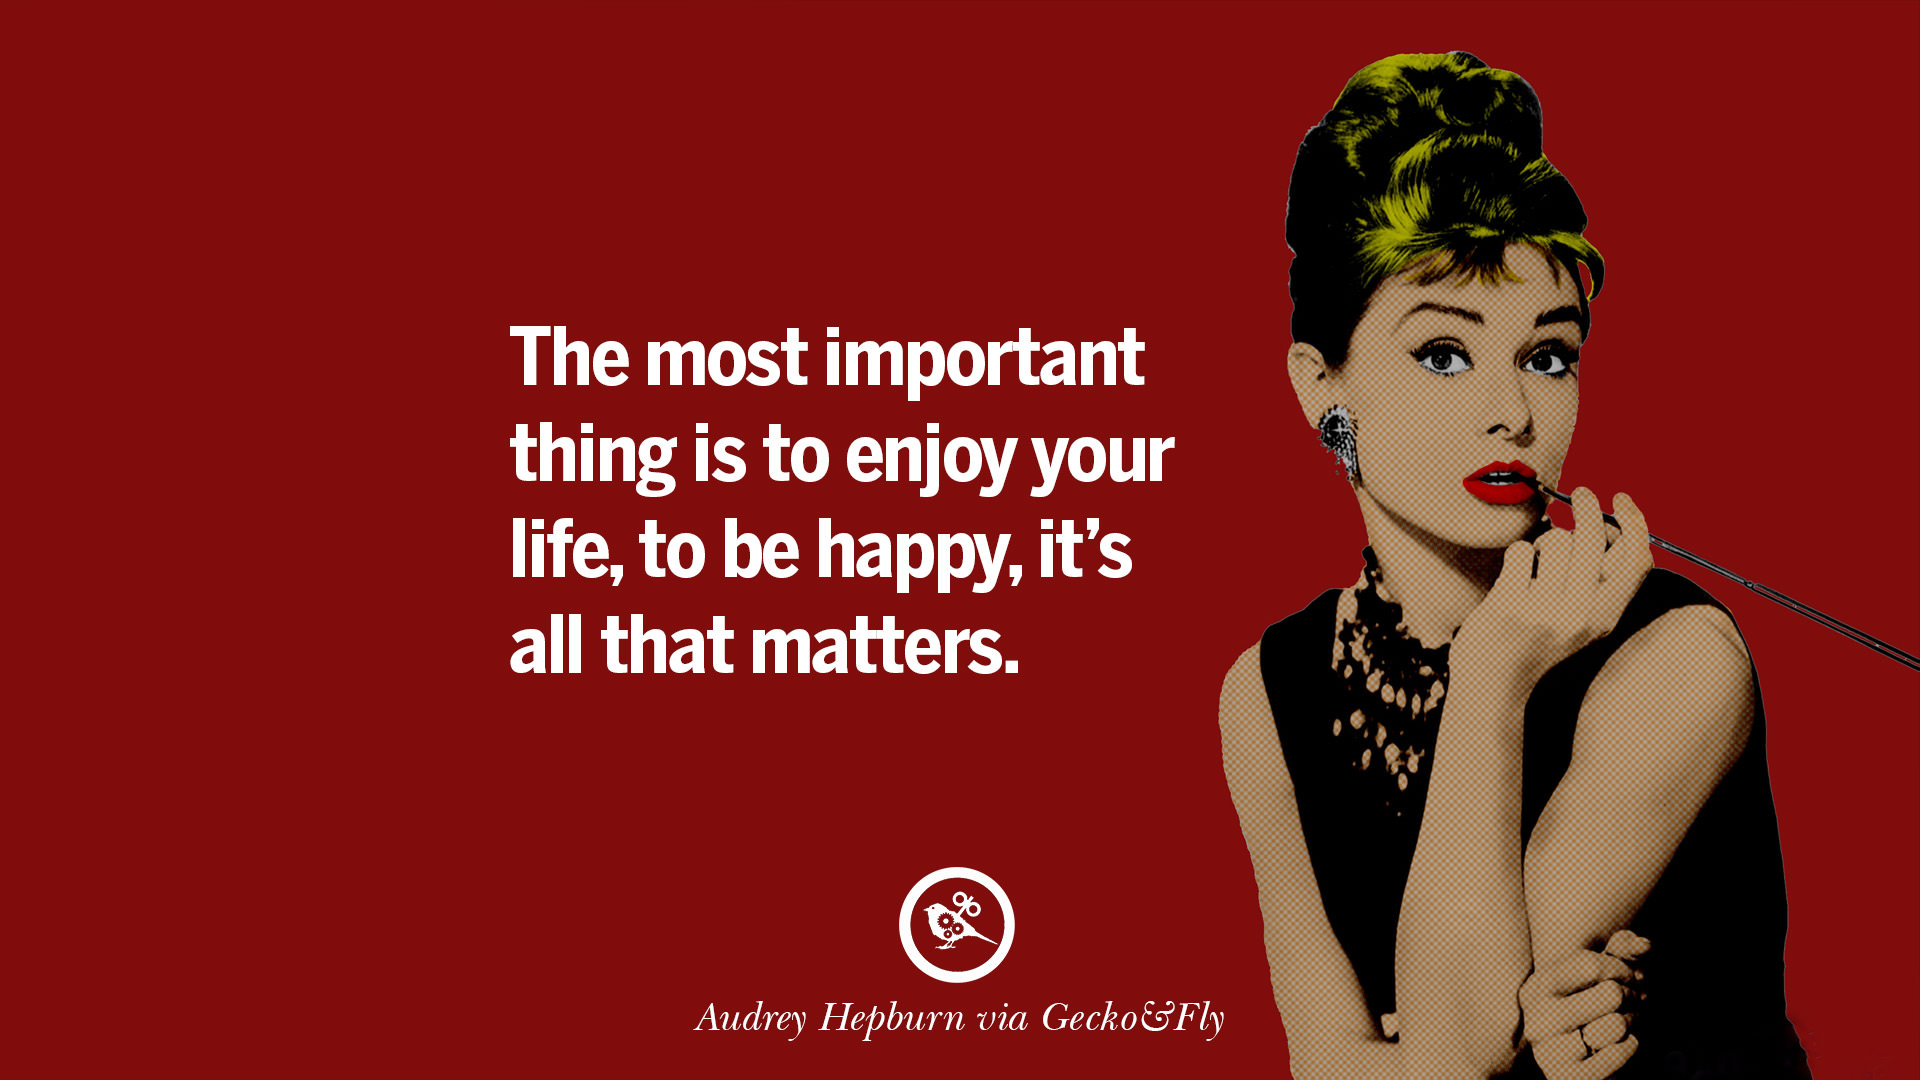 10 Fashionable Audrey Hepburn Quotes On Life, Fashion